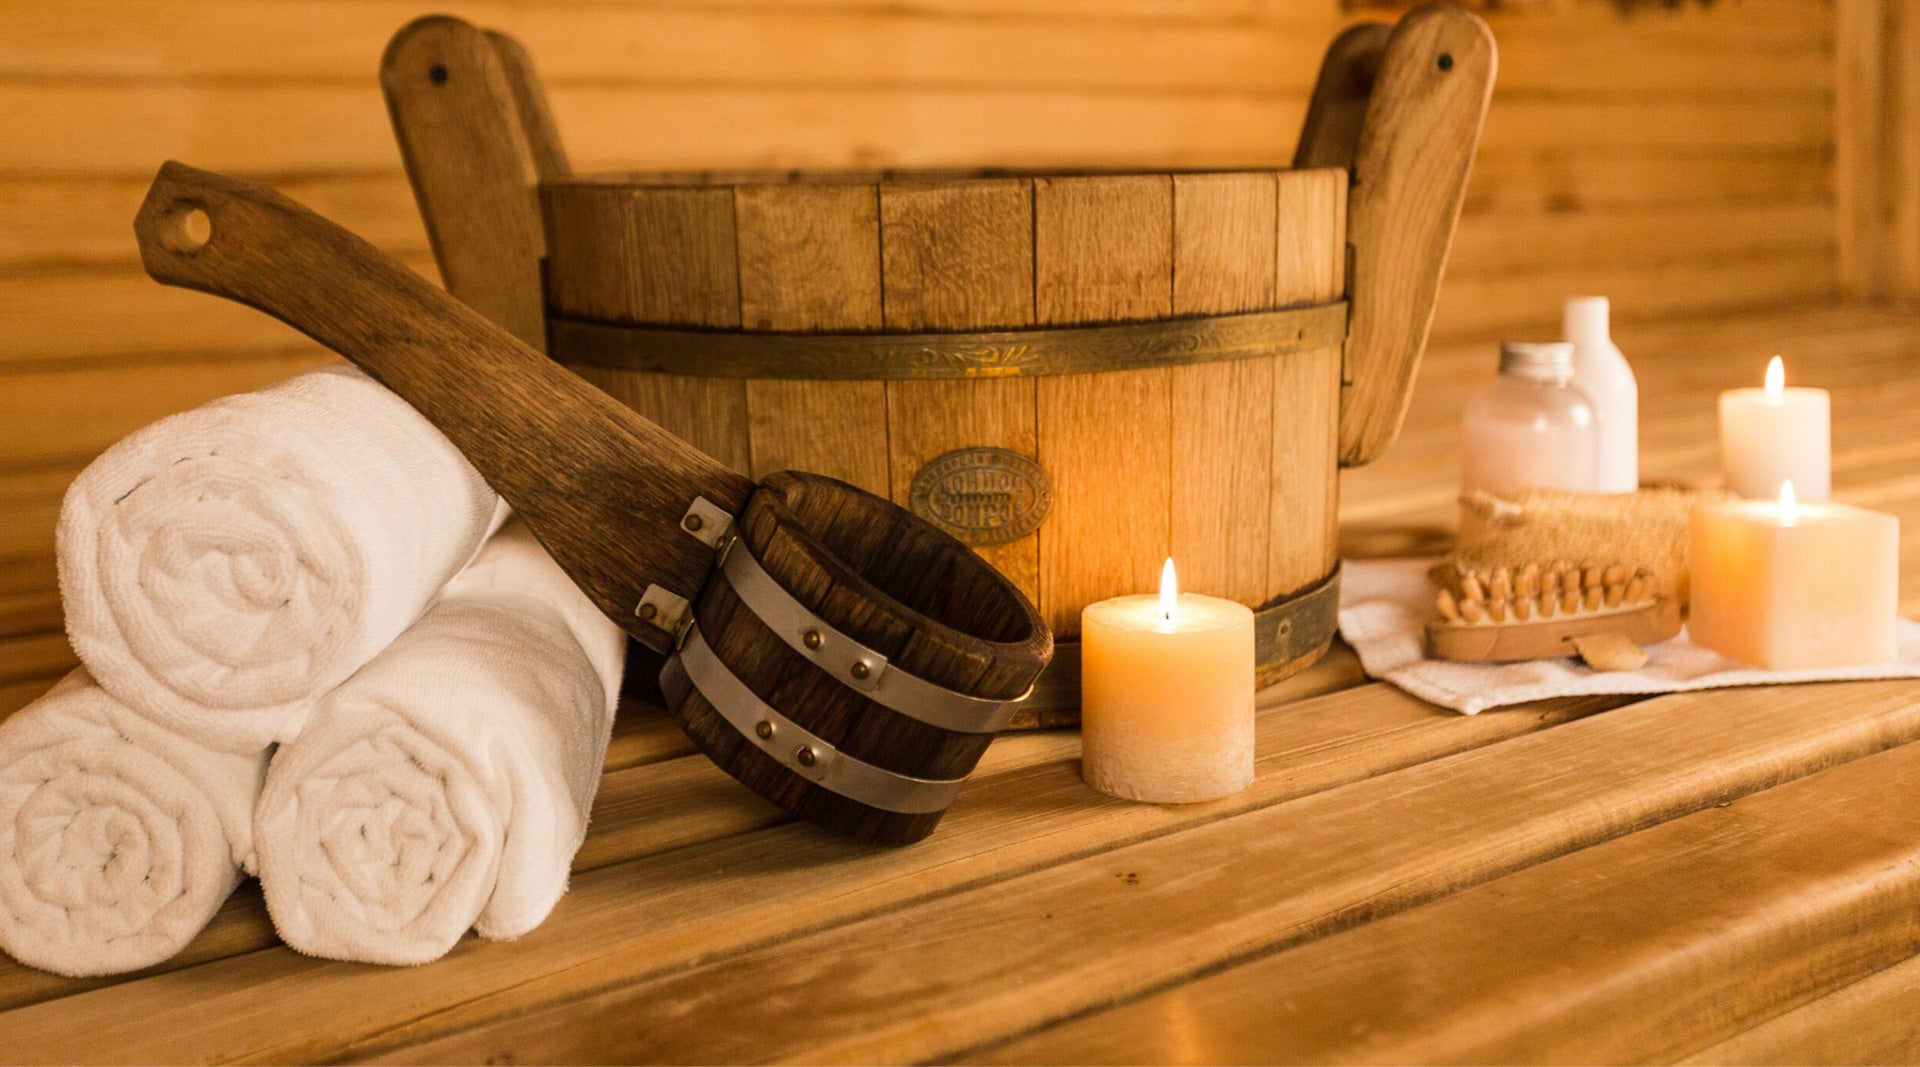 Sauna Kit Including Towels, Bucket and Ladle, Candles, Body Brush and Liquid Soap